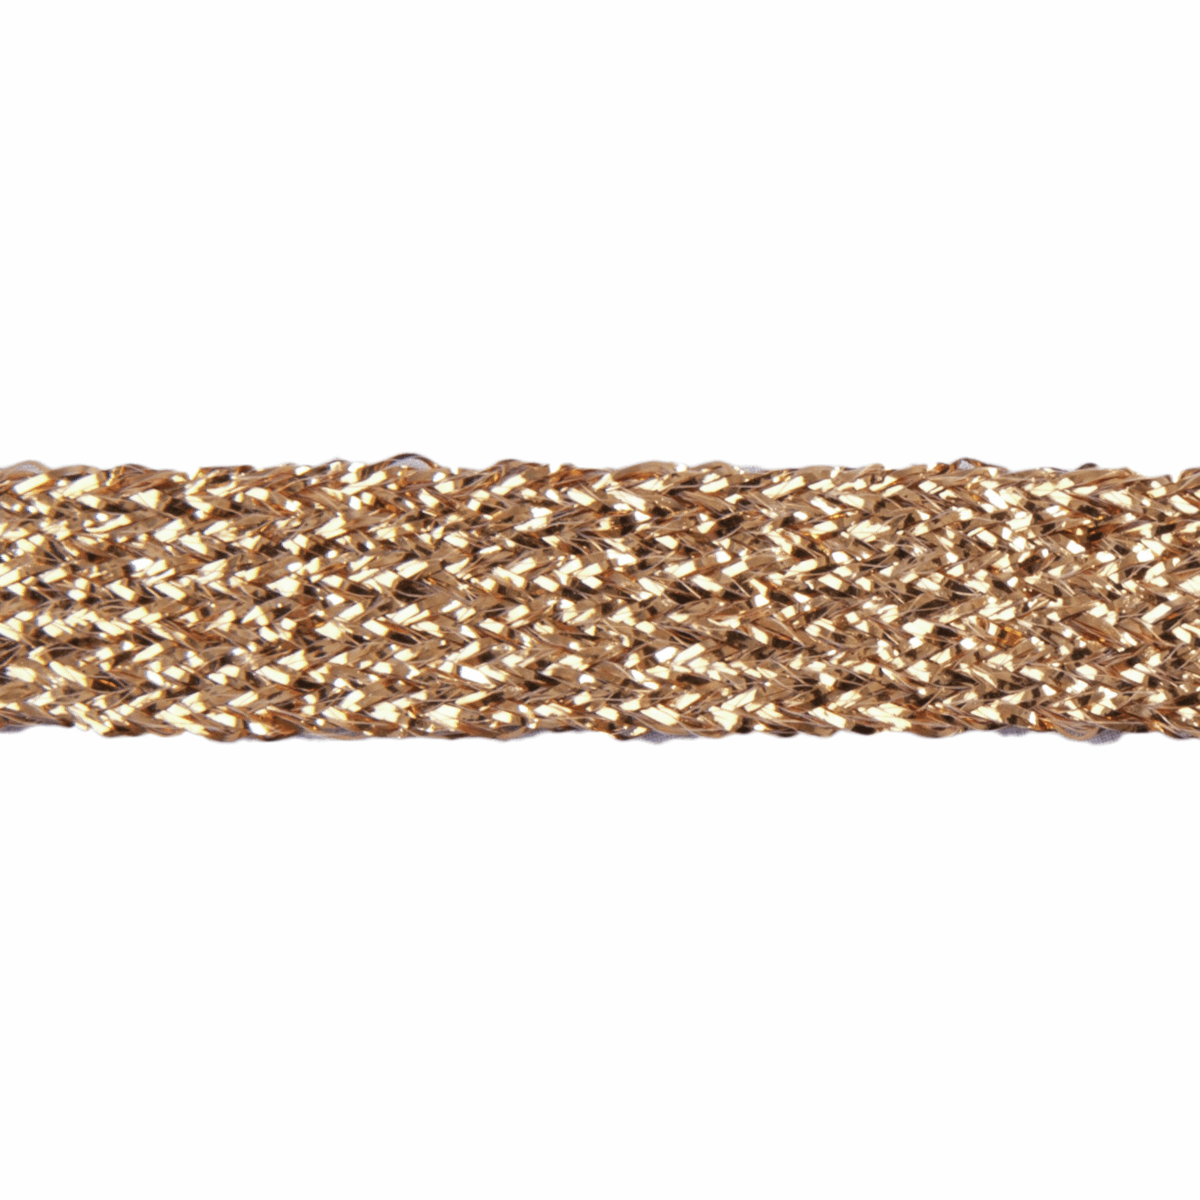 Gold Essential Trimmings 11mm Metallic Braid Sparkly Trim